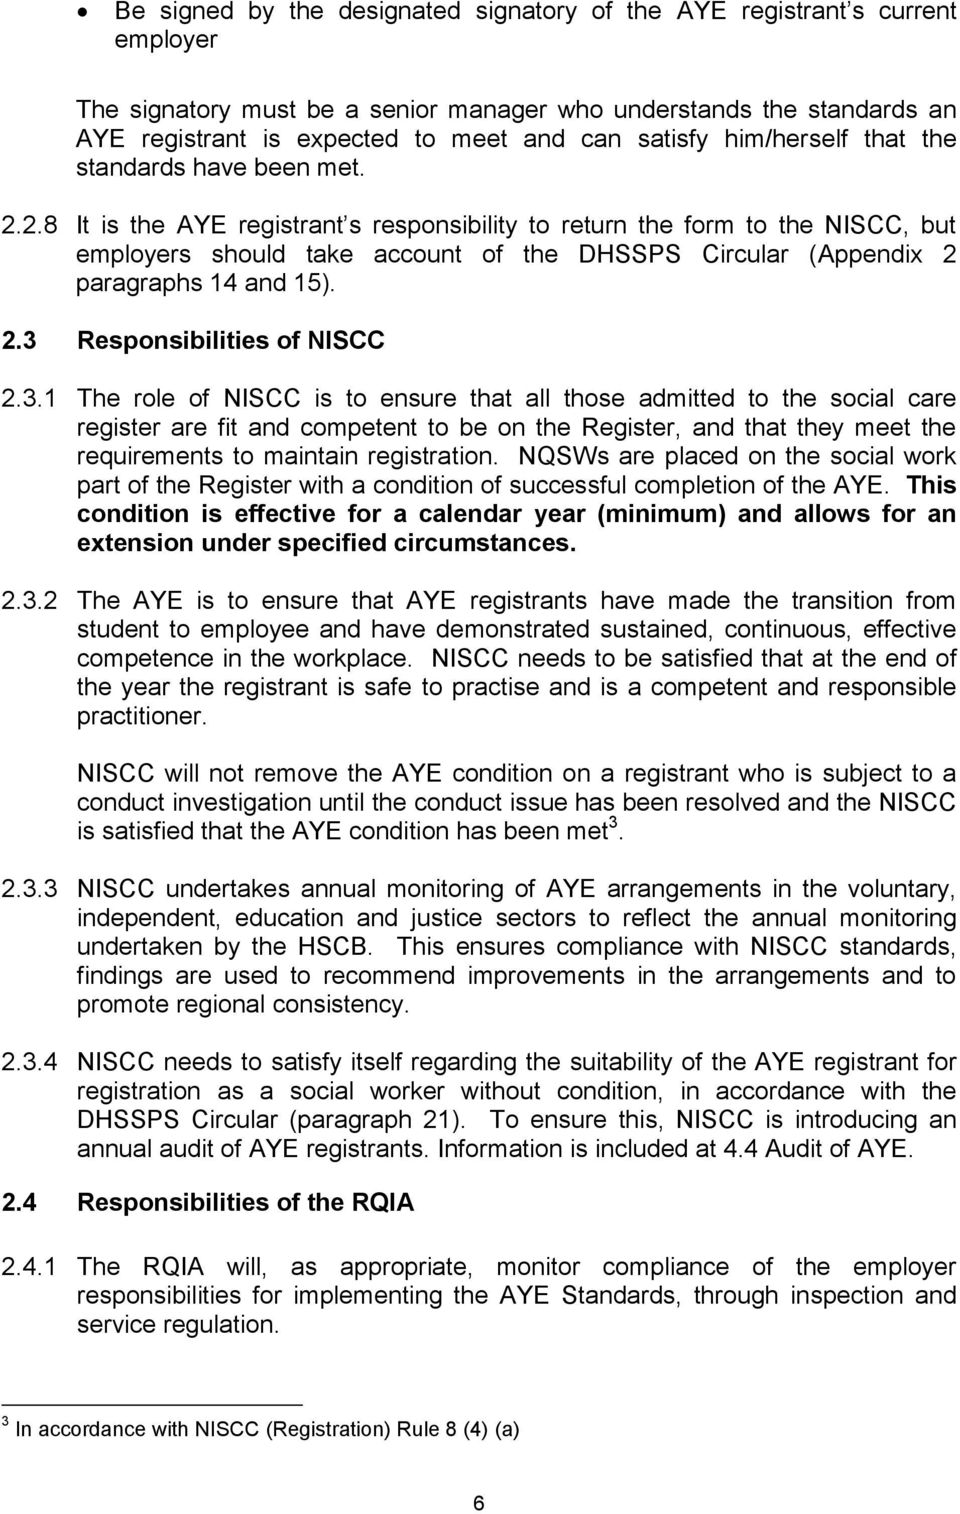 2.8 It is the AYE registrant s responsibility to return the form to the NISCC, but employers should take account of the DHSSPS Circular (Appendix 2 paragraphs 14 and 15). 2.3 Responsibilities of NISCC 2.